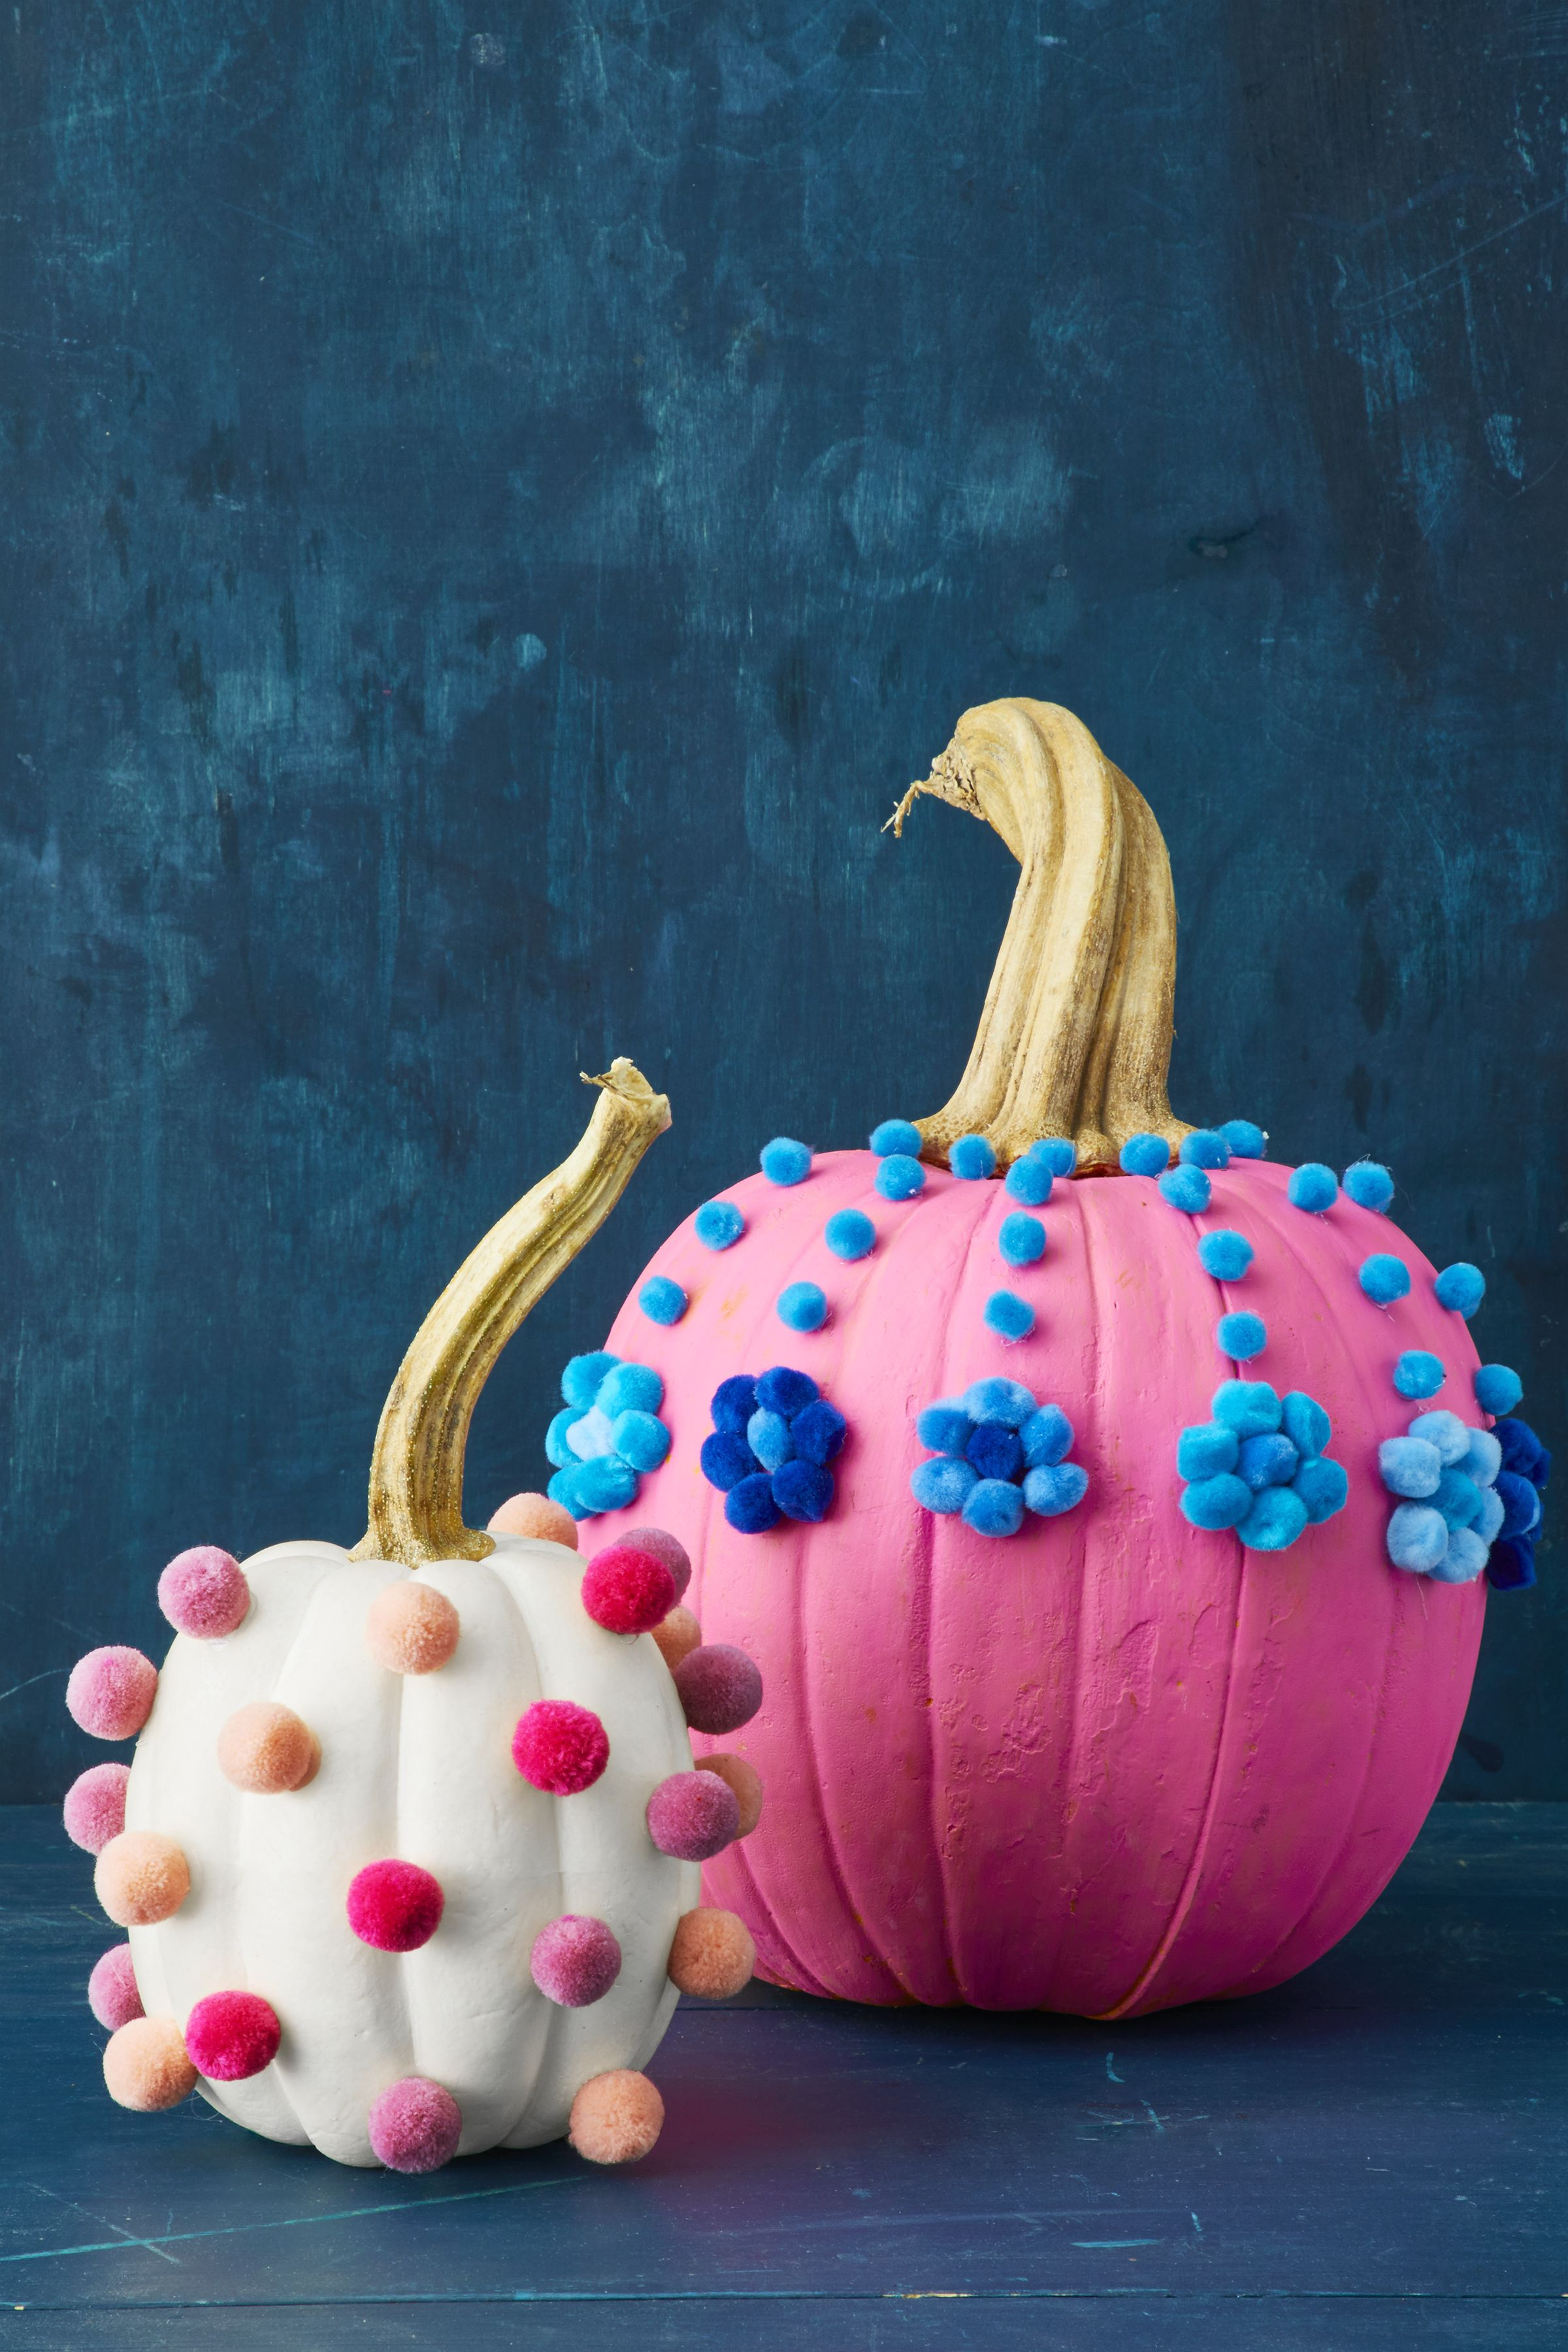 Creative no carve pumpkin decorating ideas for halloween